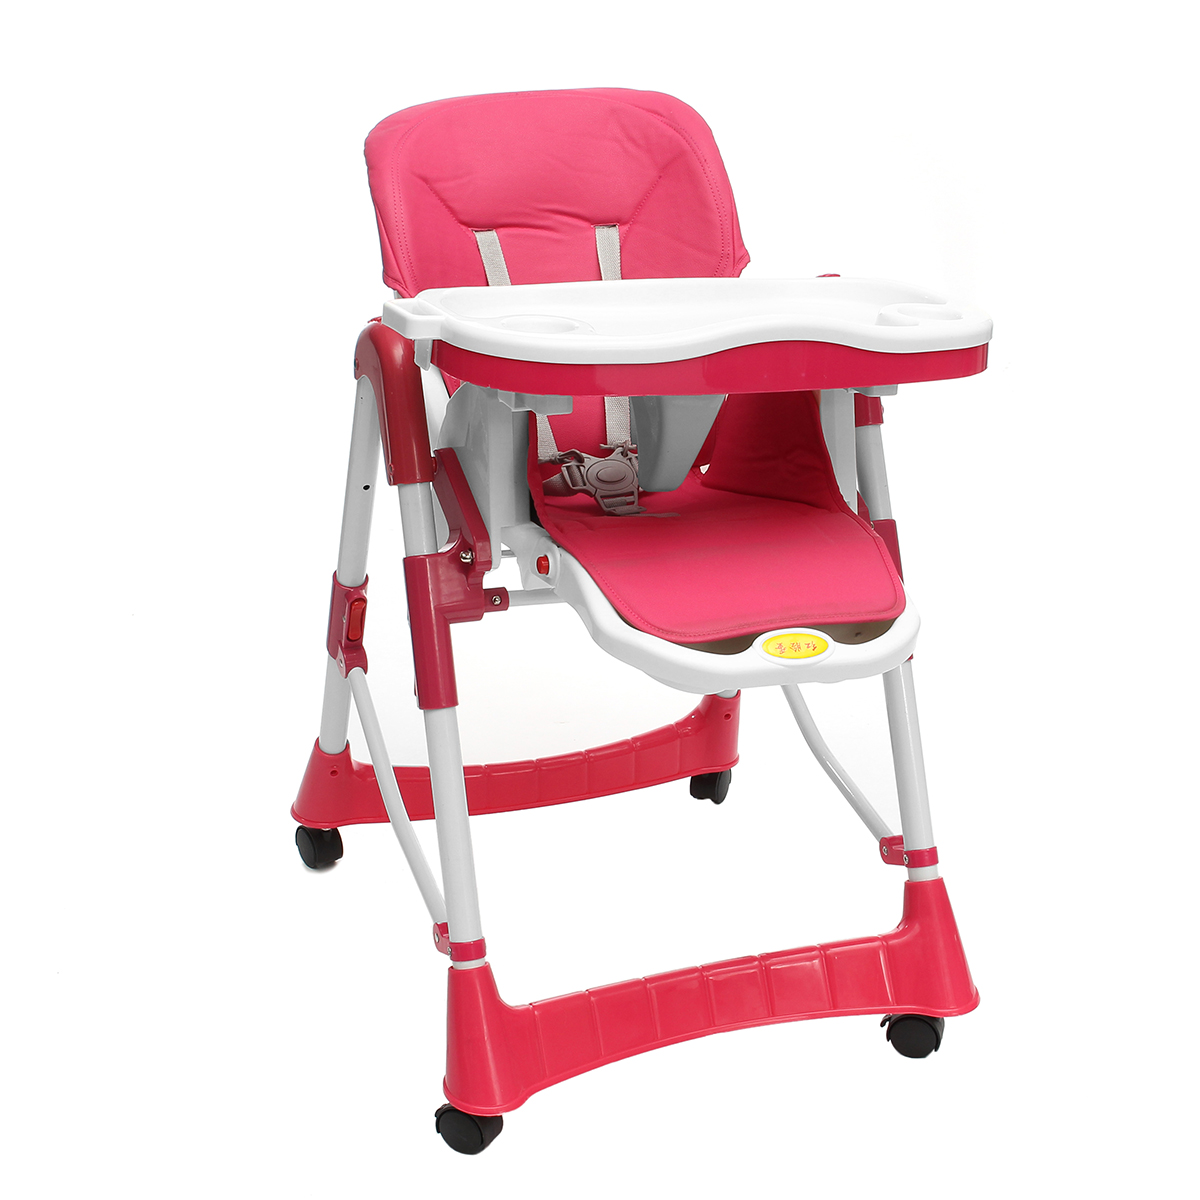 high chair with wheels banquet hall covers for sale baby child stool seat adjustable foldable